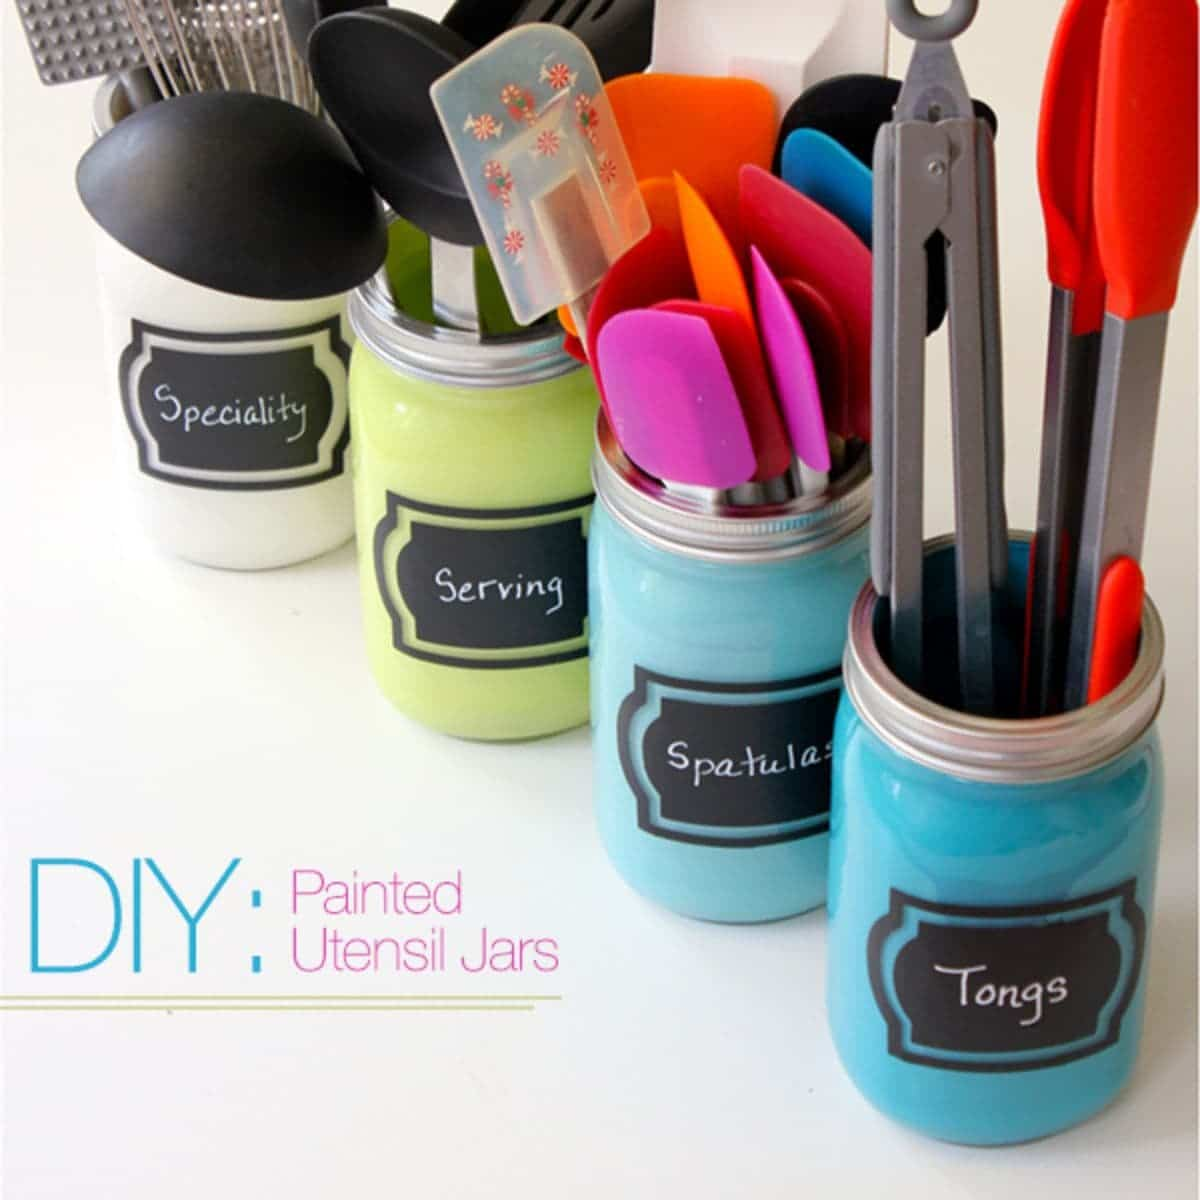 4 mason jars in a row, each colored in pastels: blues, turquoise, yellow and cream. They have black labels on the front with chalk writing. They each contain kitchen utensils